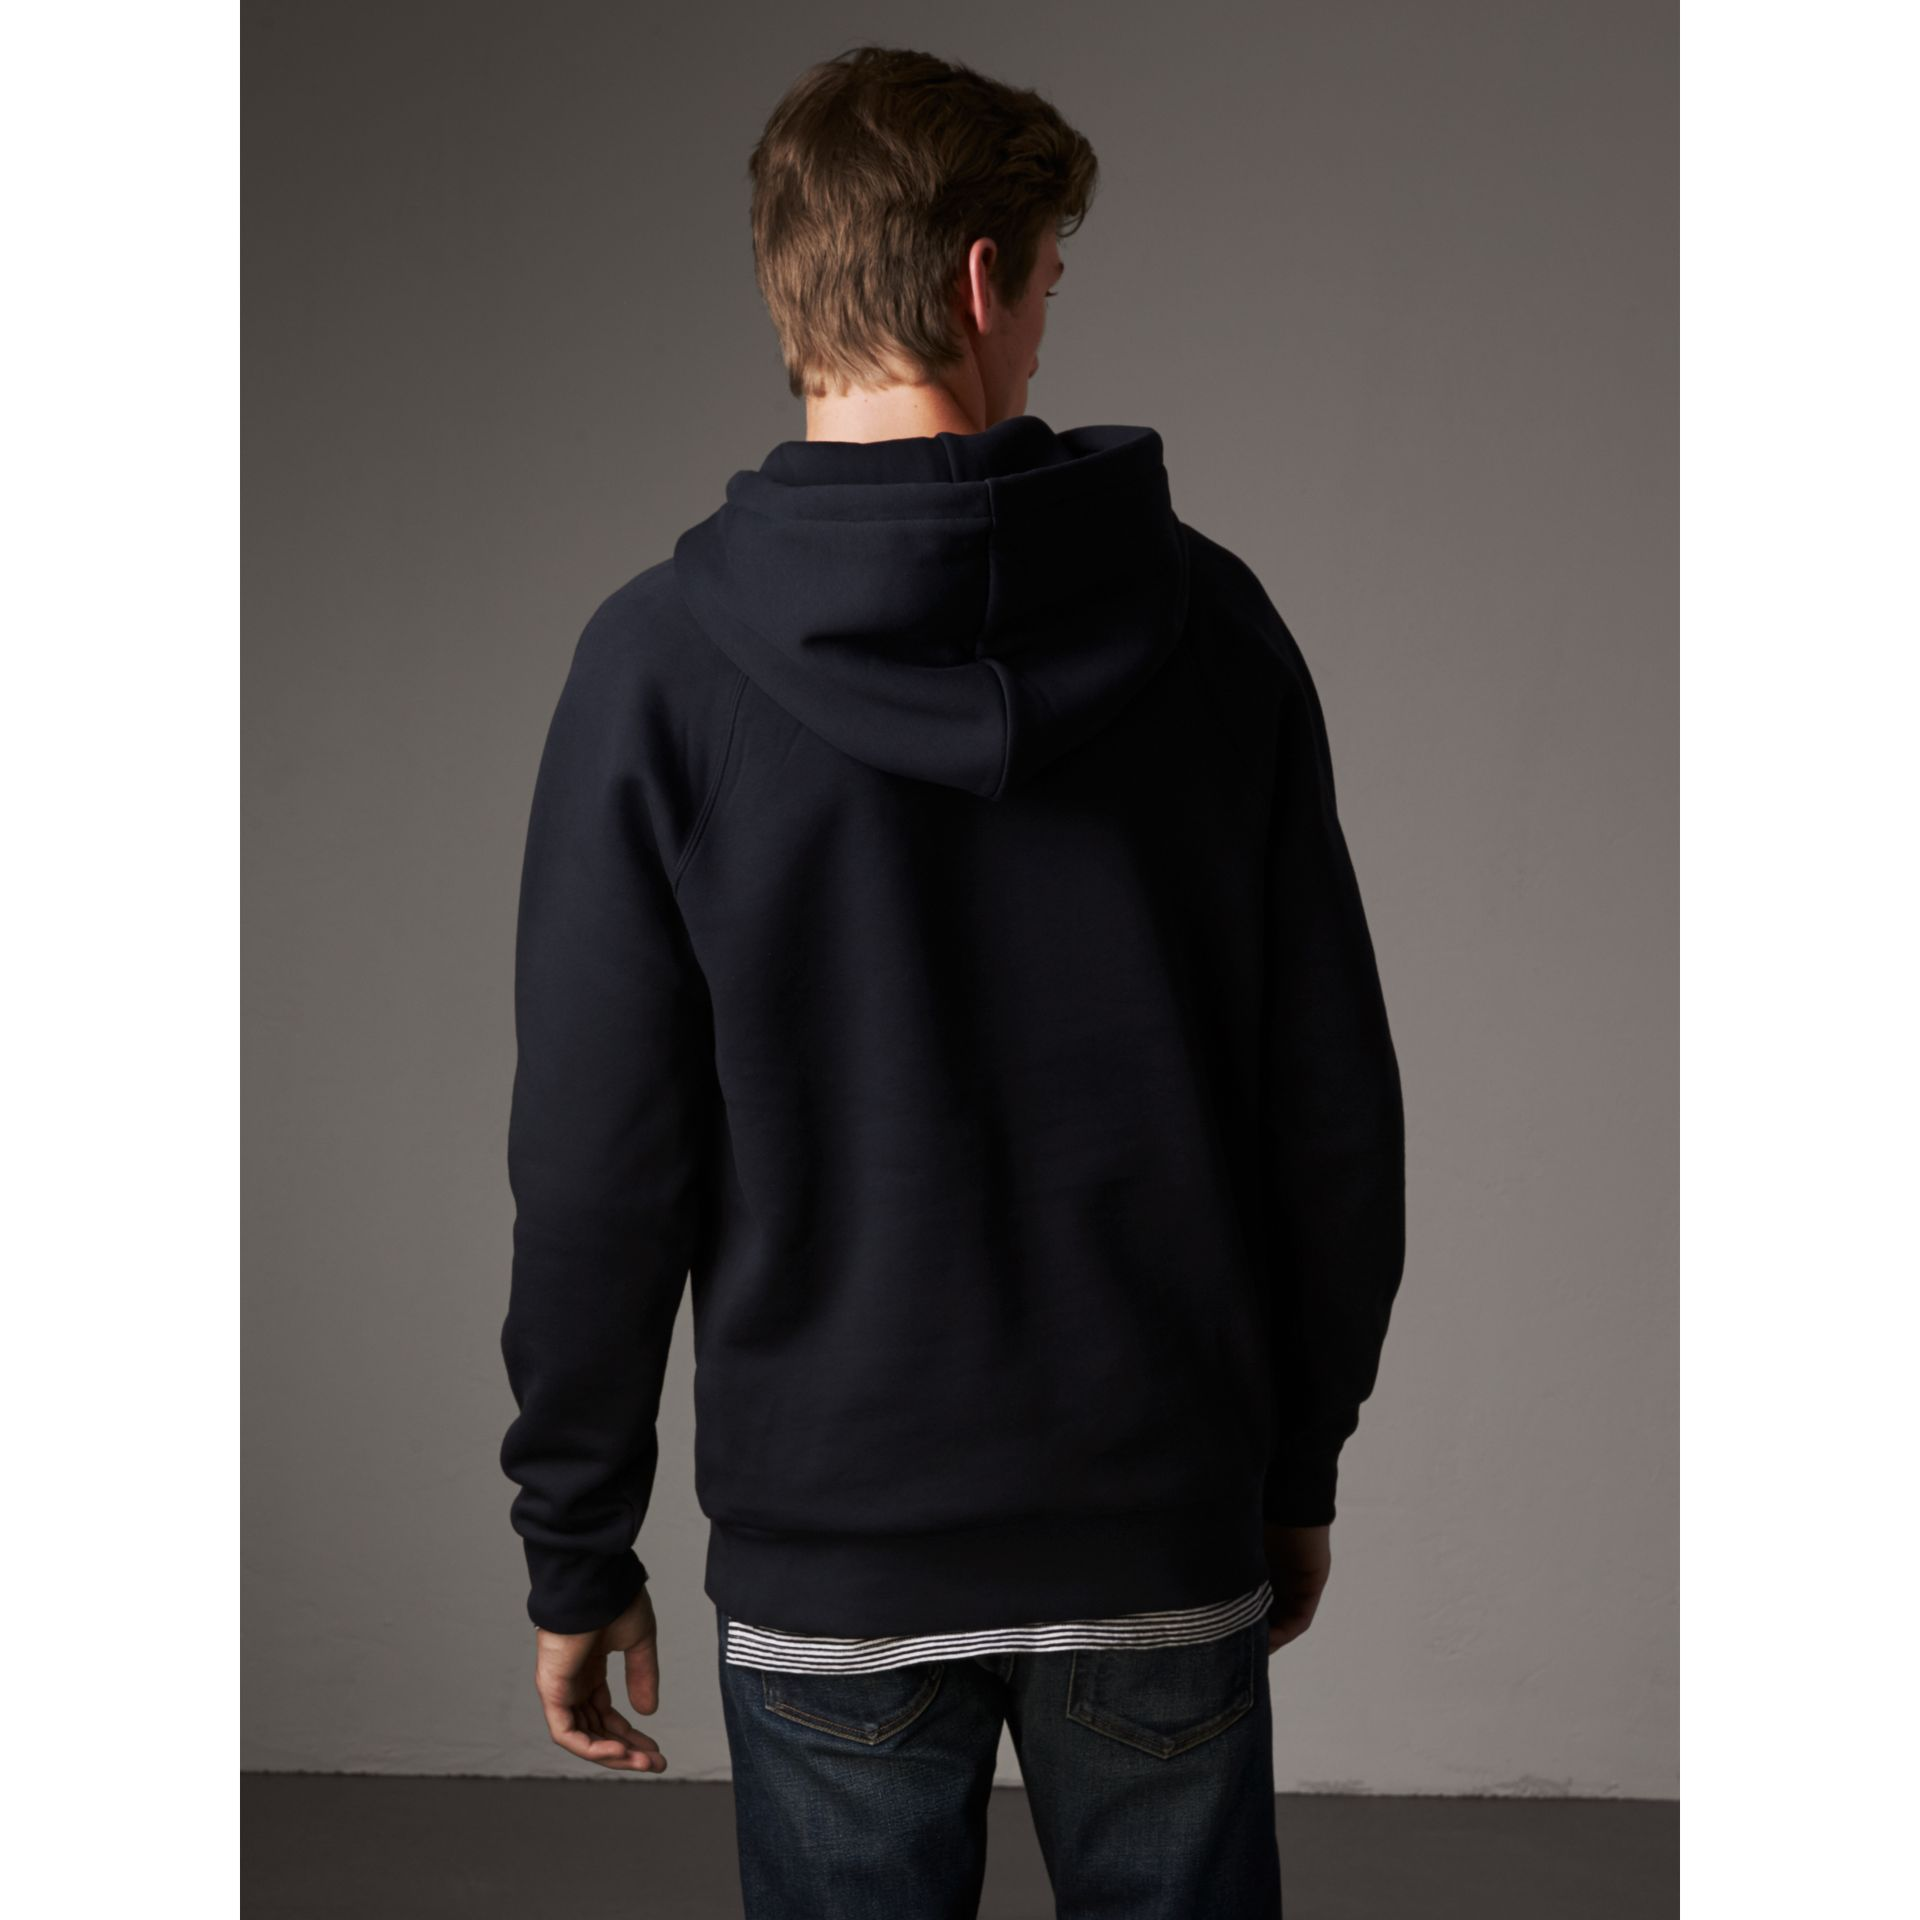 Embroidered Hooded Sweatshirt in Navy - Men | Burberry Canada - gallery image 3